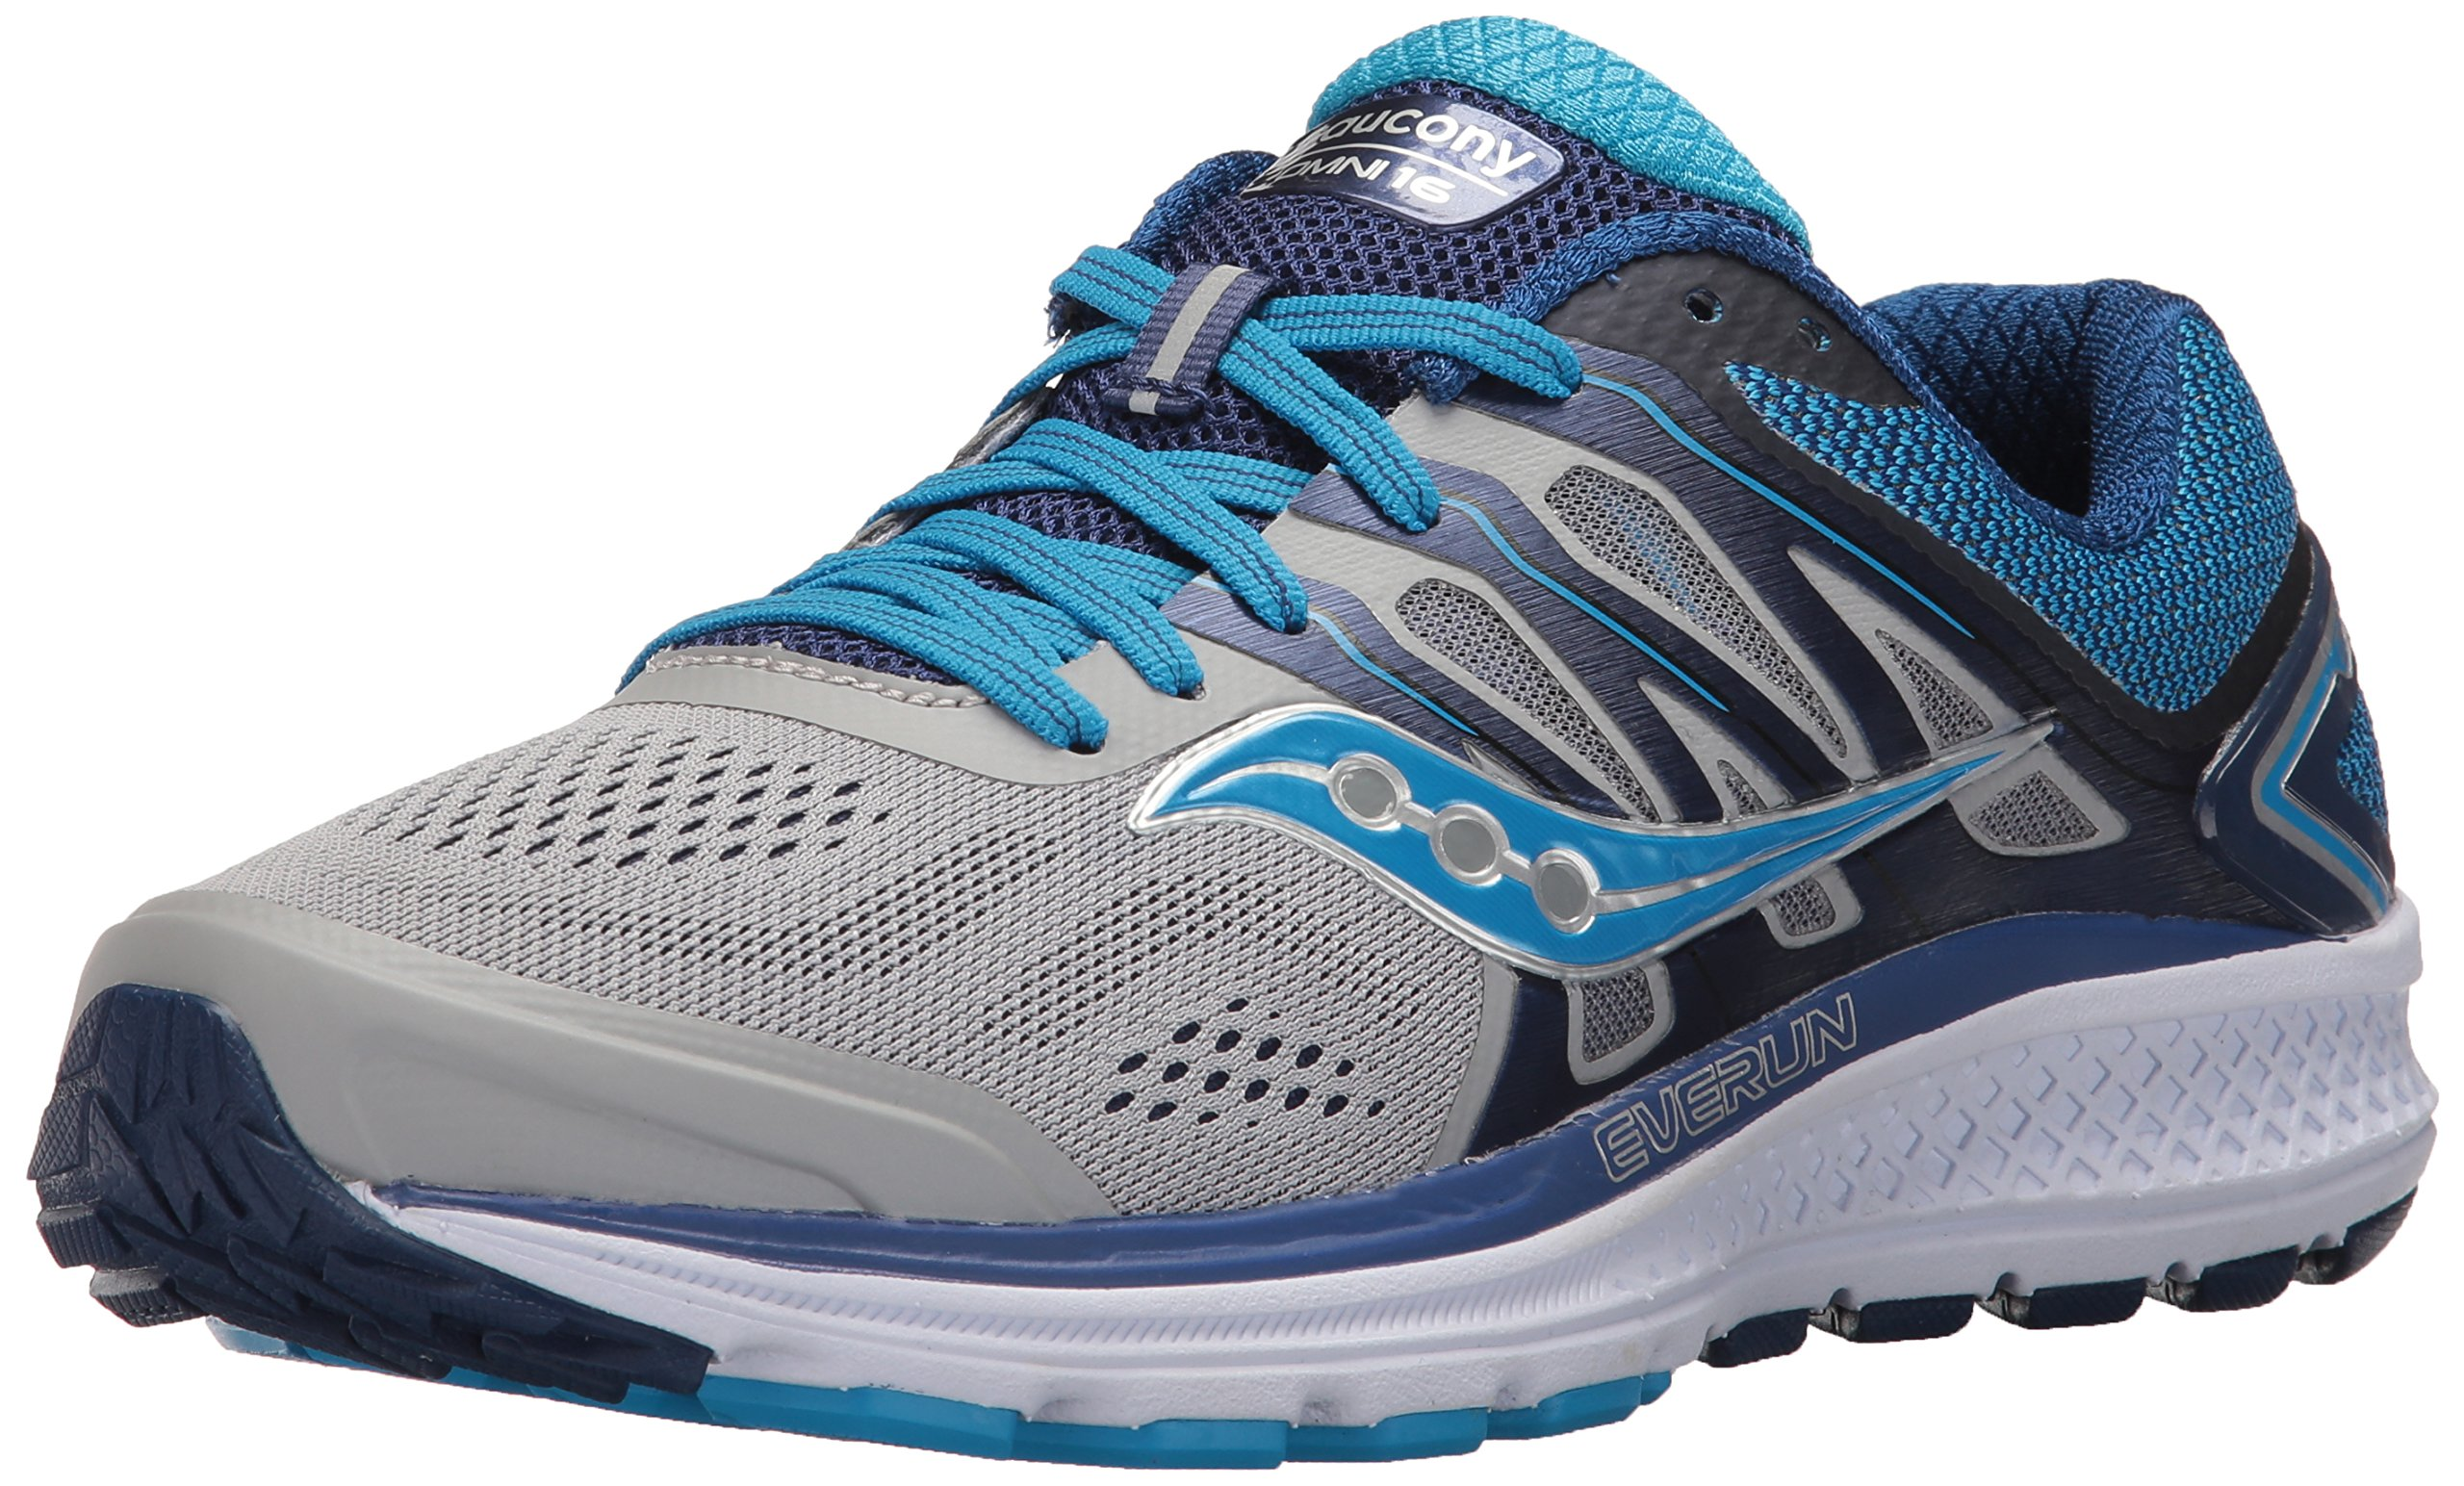 Saucony Women's Omni 16 Running Shoe, Grey Blue, 6.5 Medium US